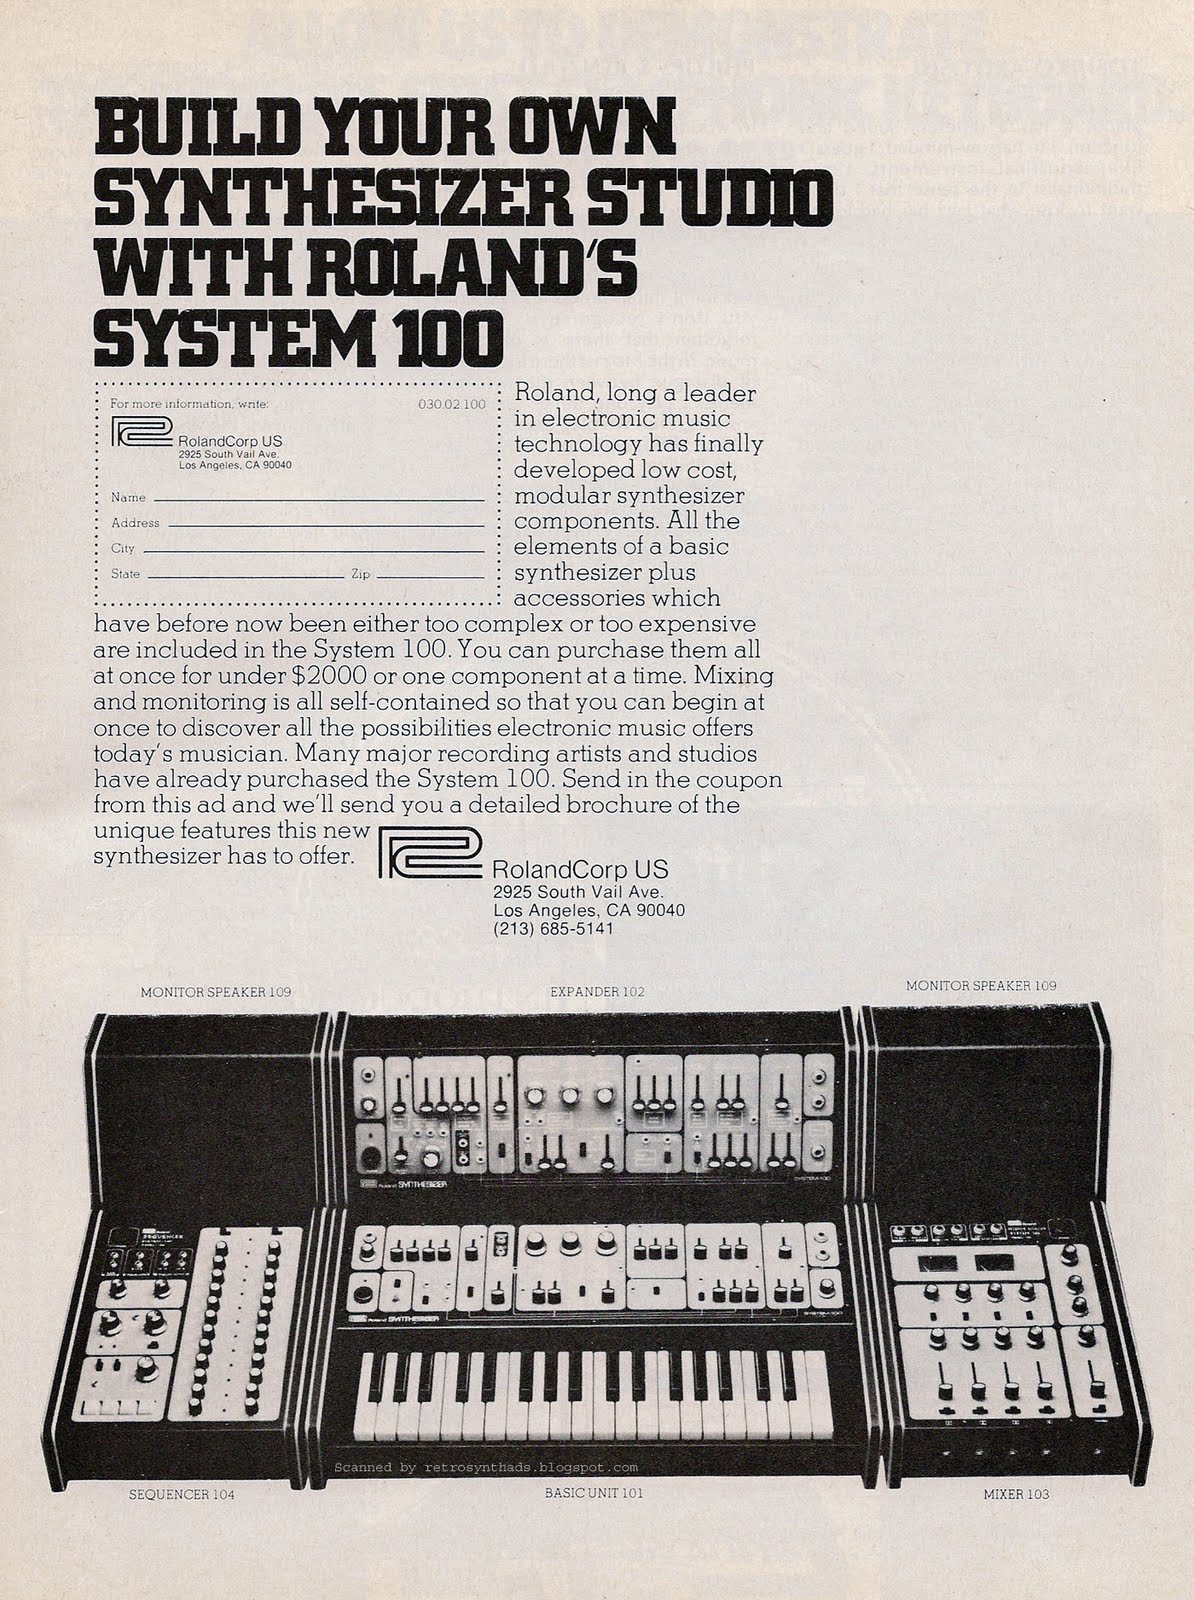 http://retrosynthads.blogspot.ca/2009/10/roland-system-100-contemporary-keyboard.html